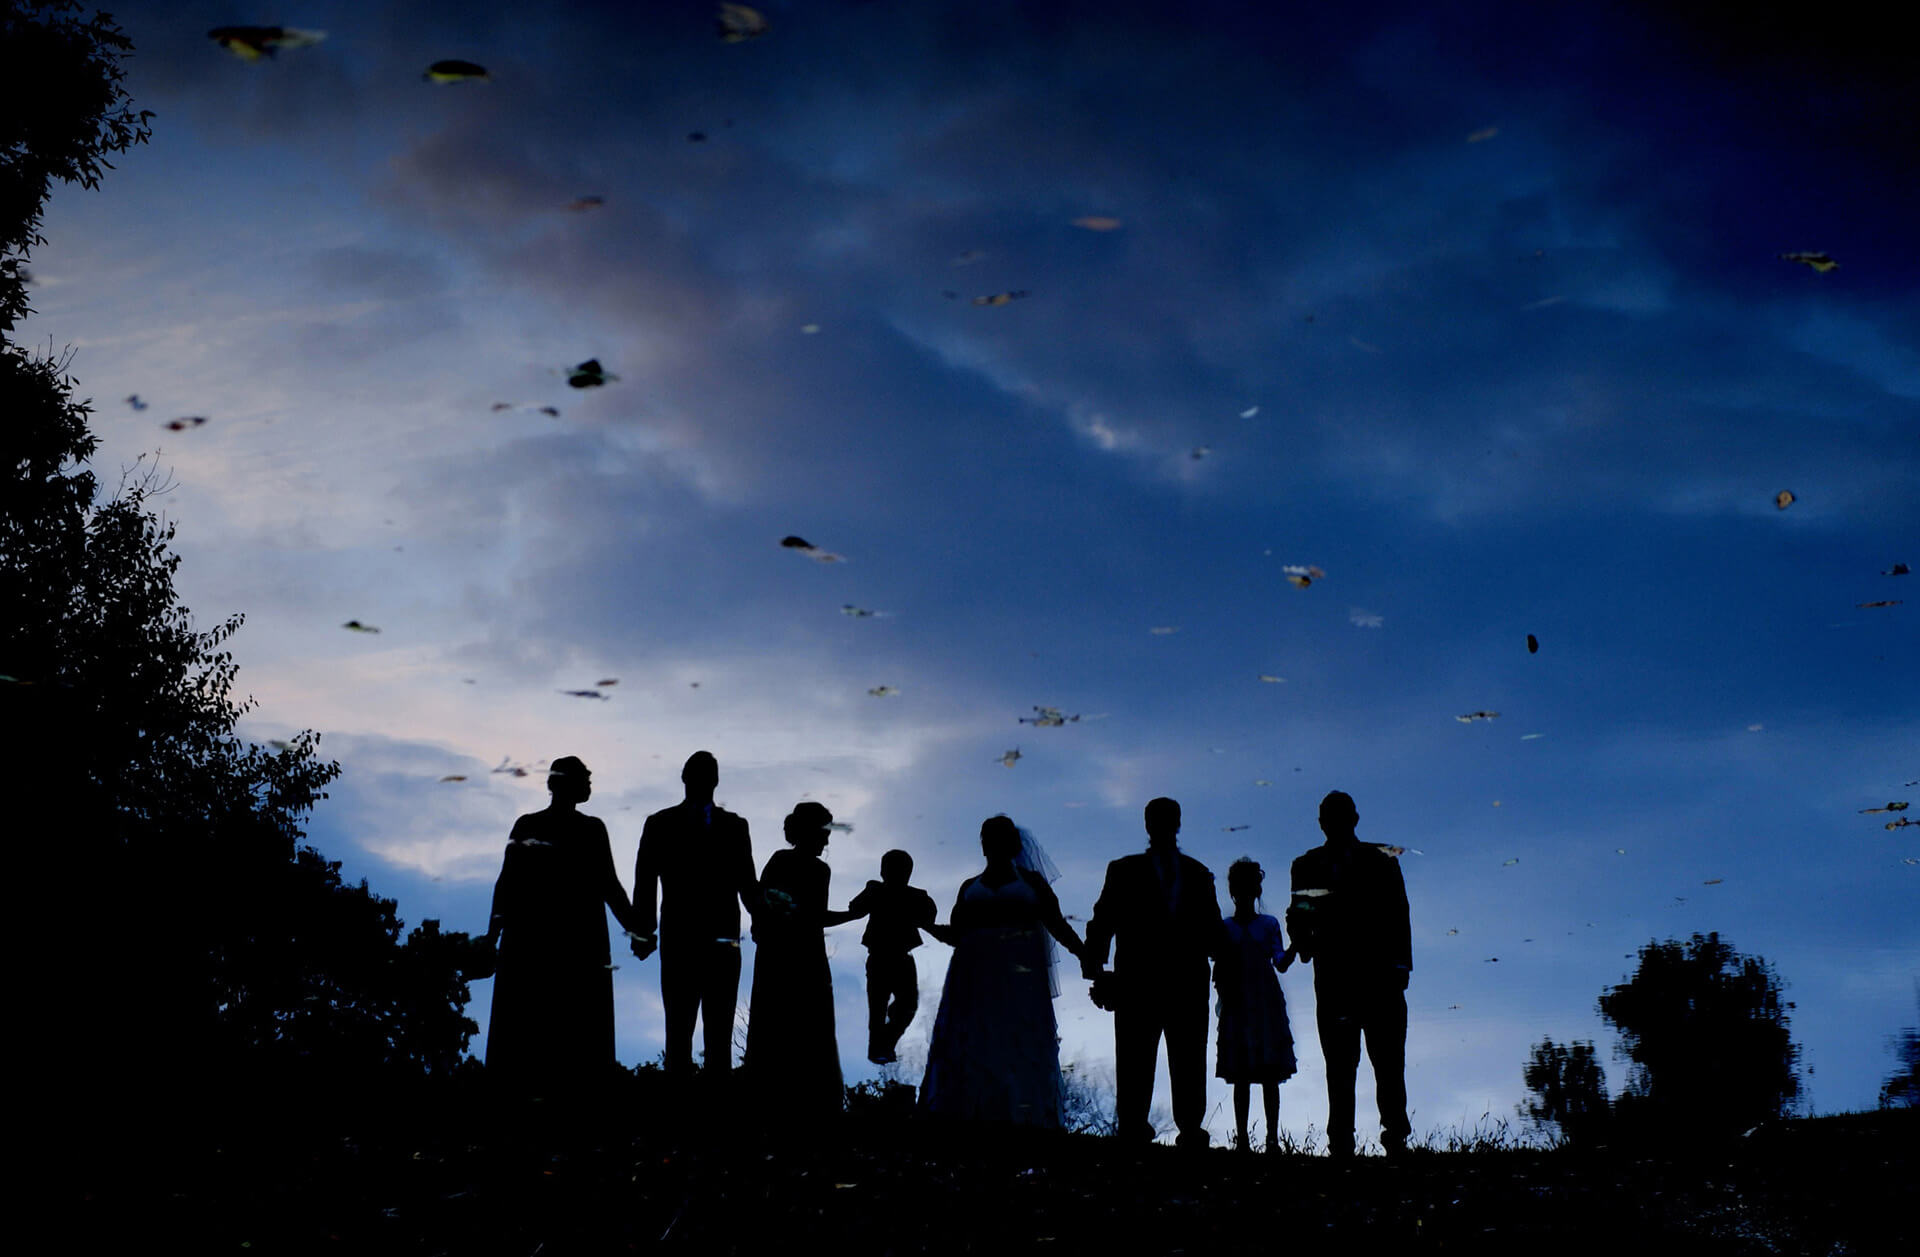 Michigan wedding photographer photographs in a unique, creative way. This is a photo of the wedding party reflected in a pond in the fall at sunset.